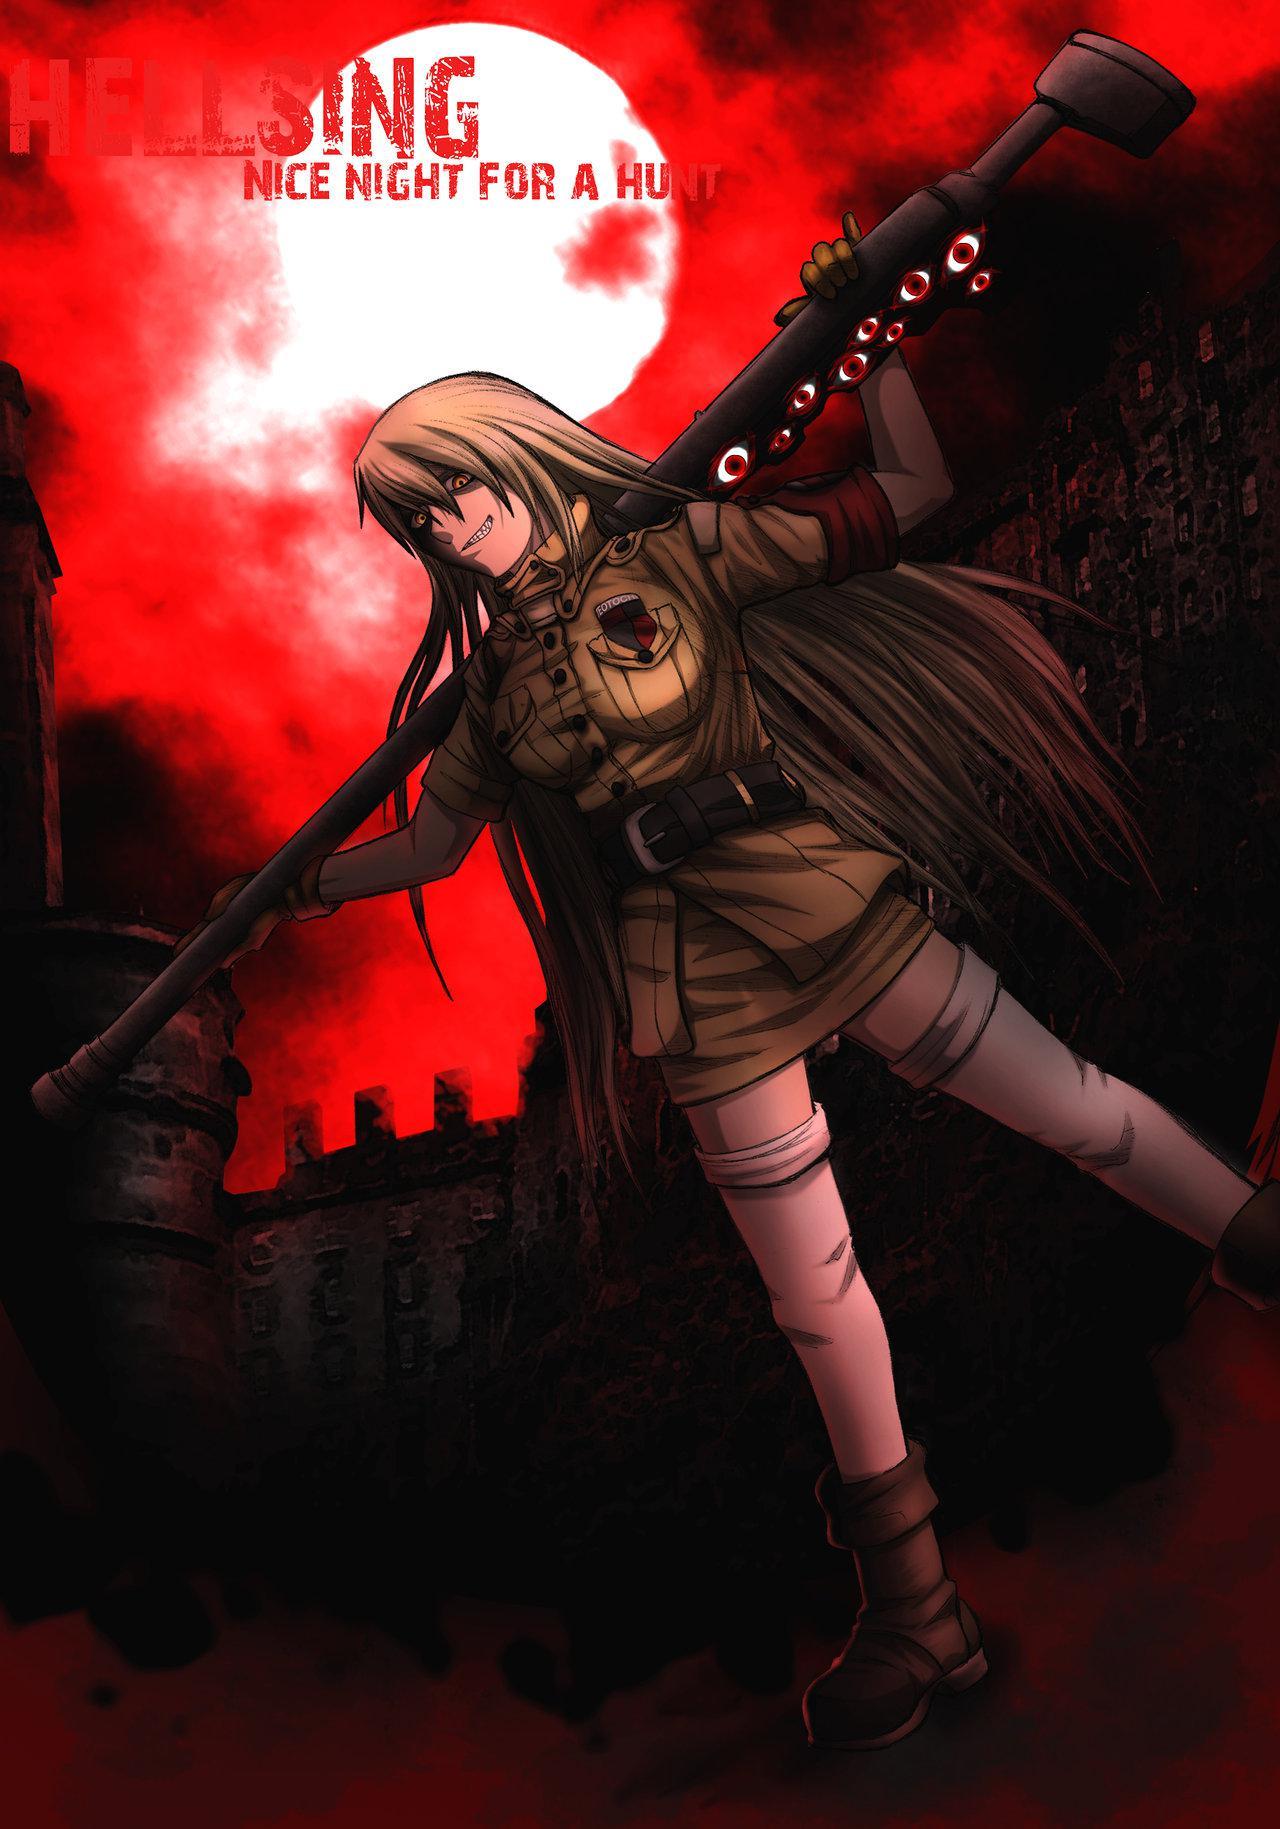 Seras Victoria Hellsing Ultimate Cannon Album on